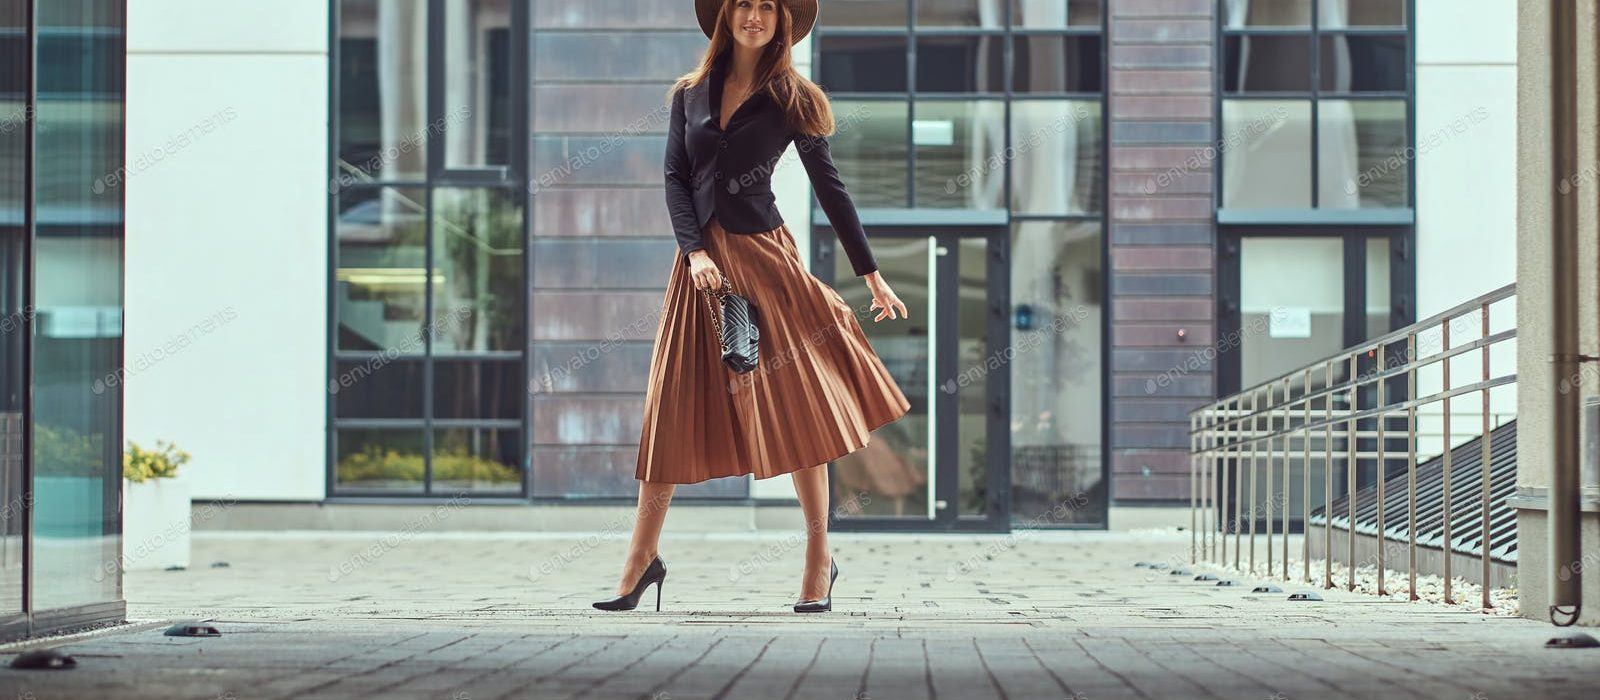 How to look business chic